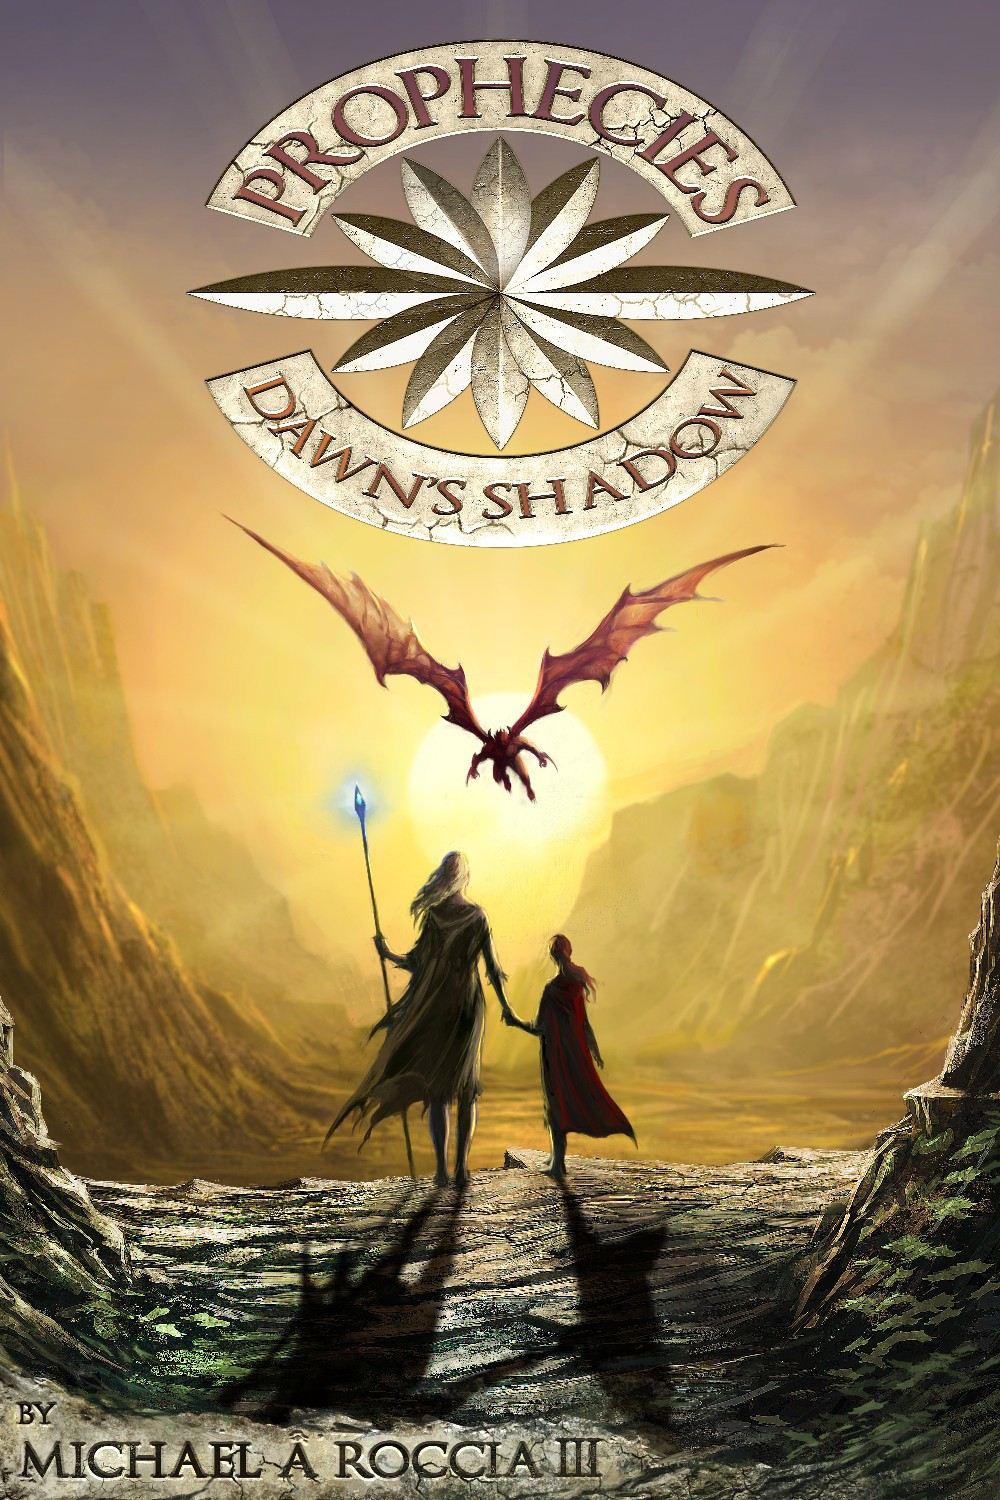 PROPHECIES: DAWN'S SHADOW book cover project